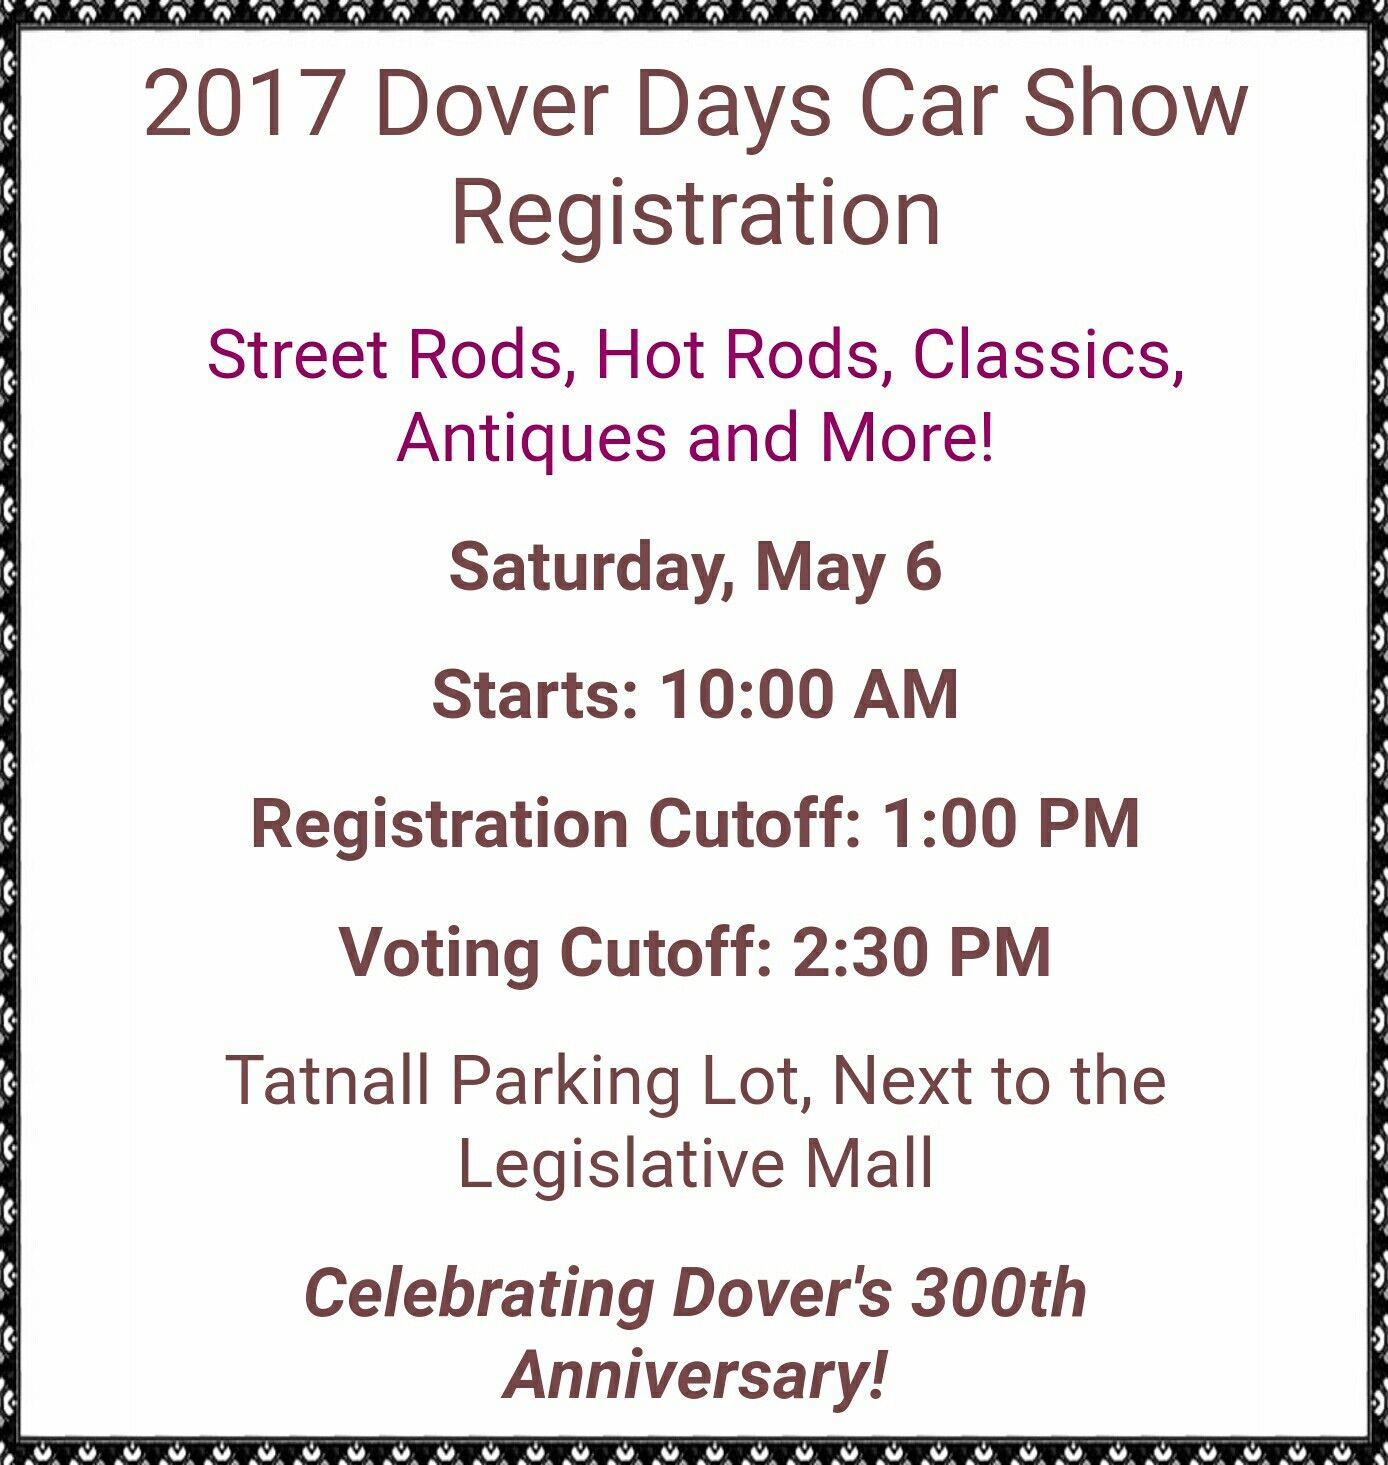 Dover days car show dover de saturday may 6th http